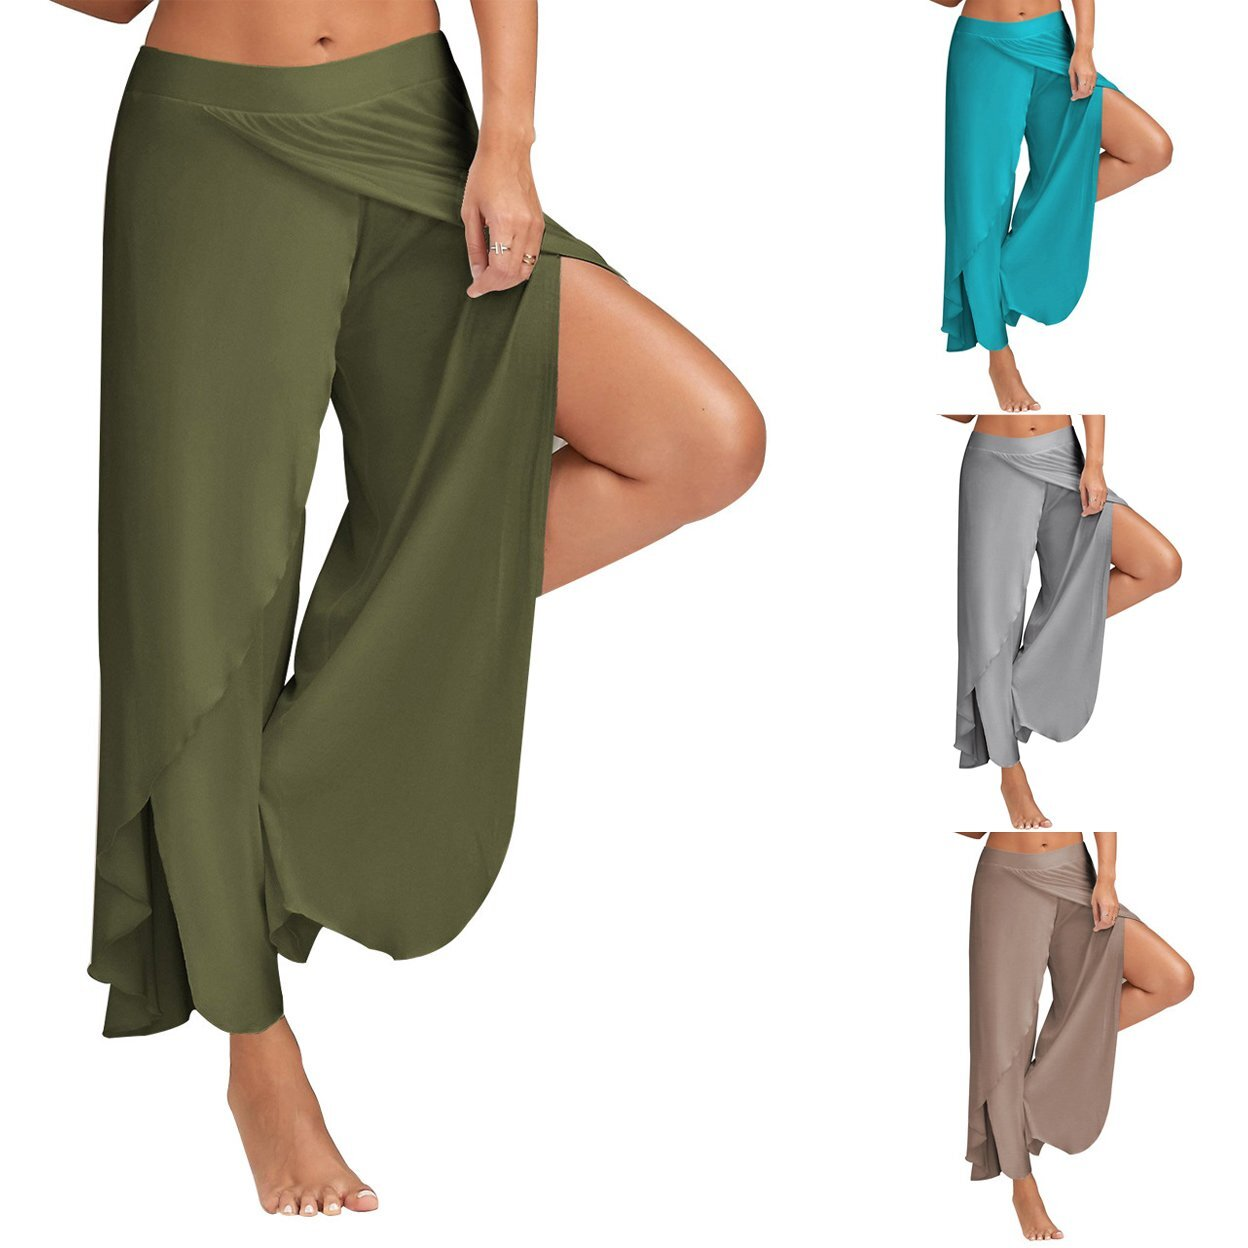 Tulipa Palazzo High Fashion Cocktail Pants -Size: 2x-Large, Color: Coffee